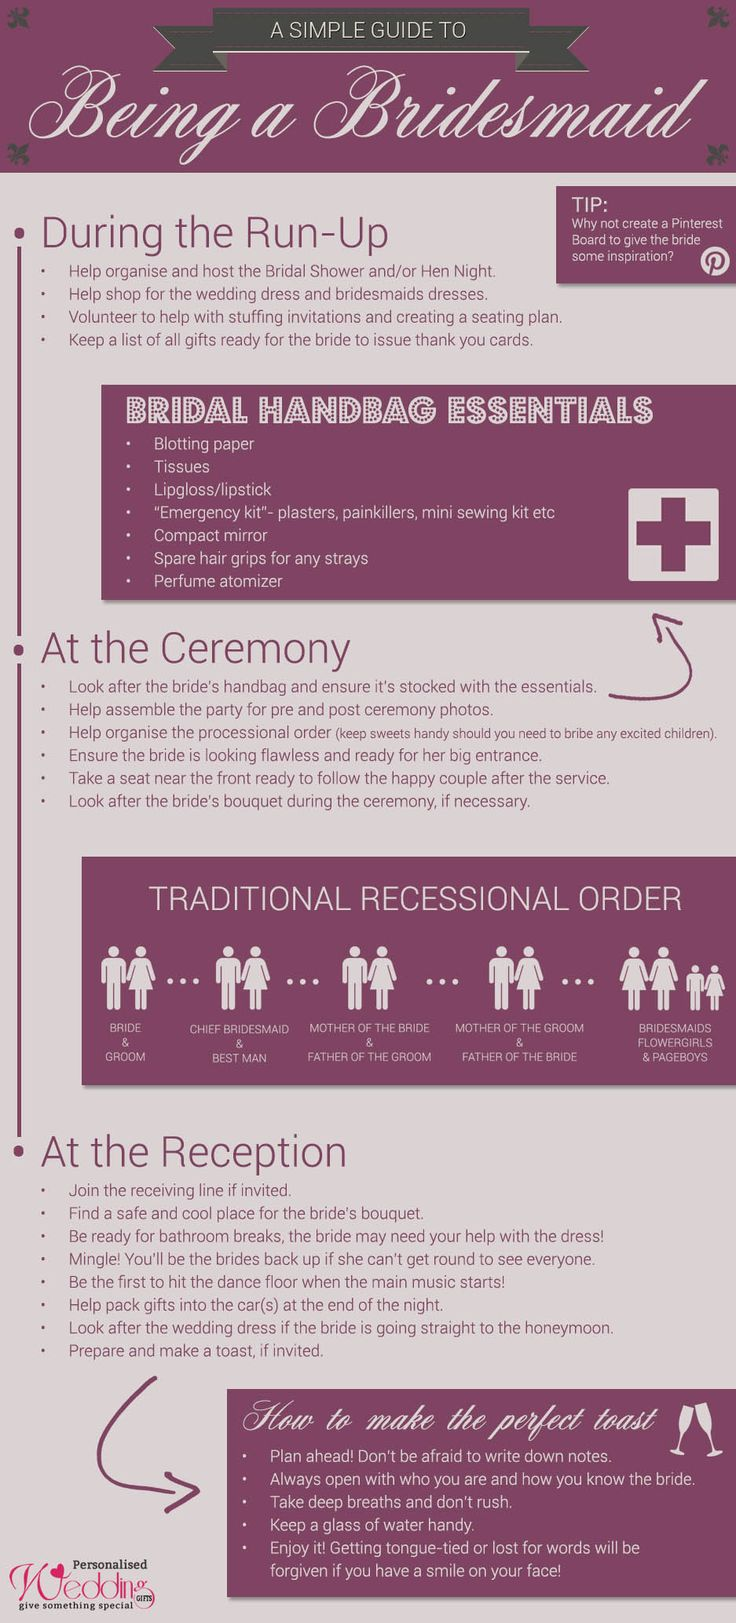 A Simple Guide To Being A Bridesmaid